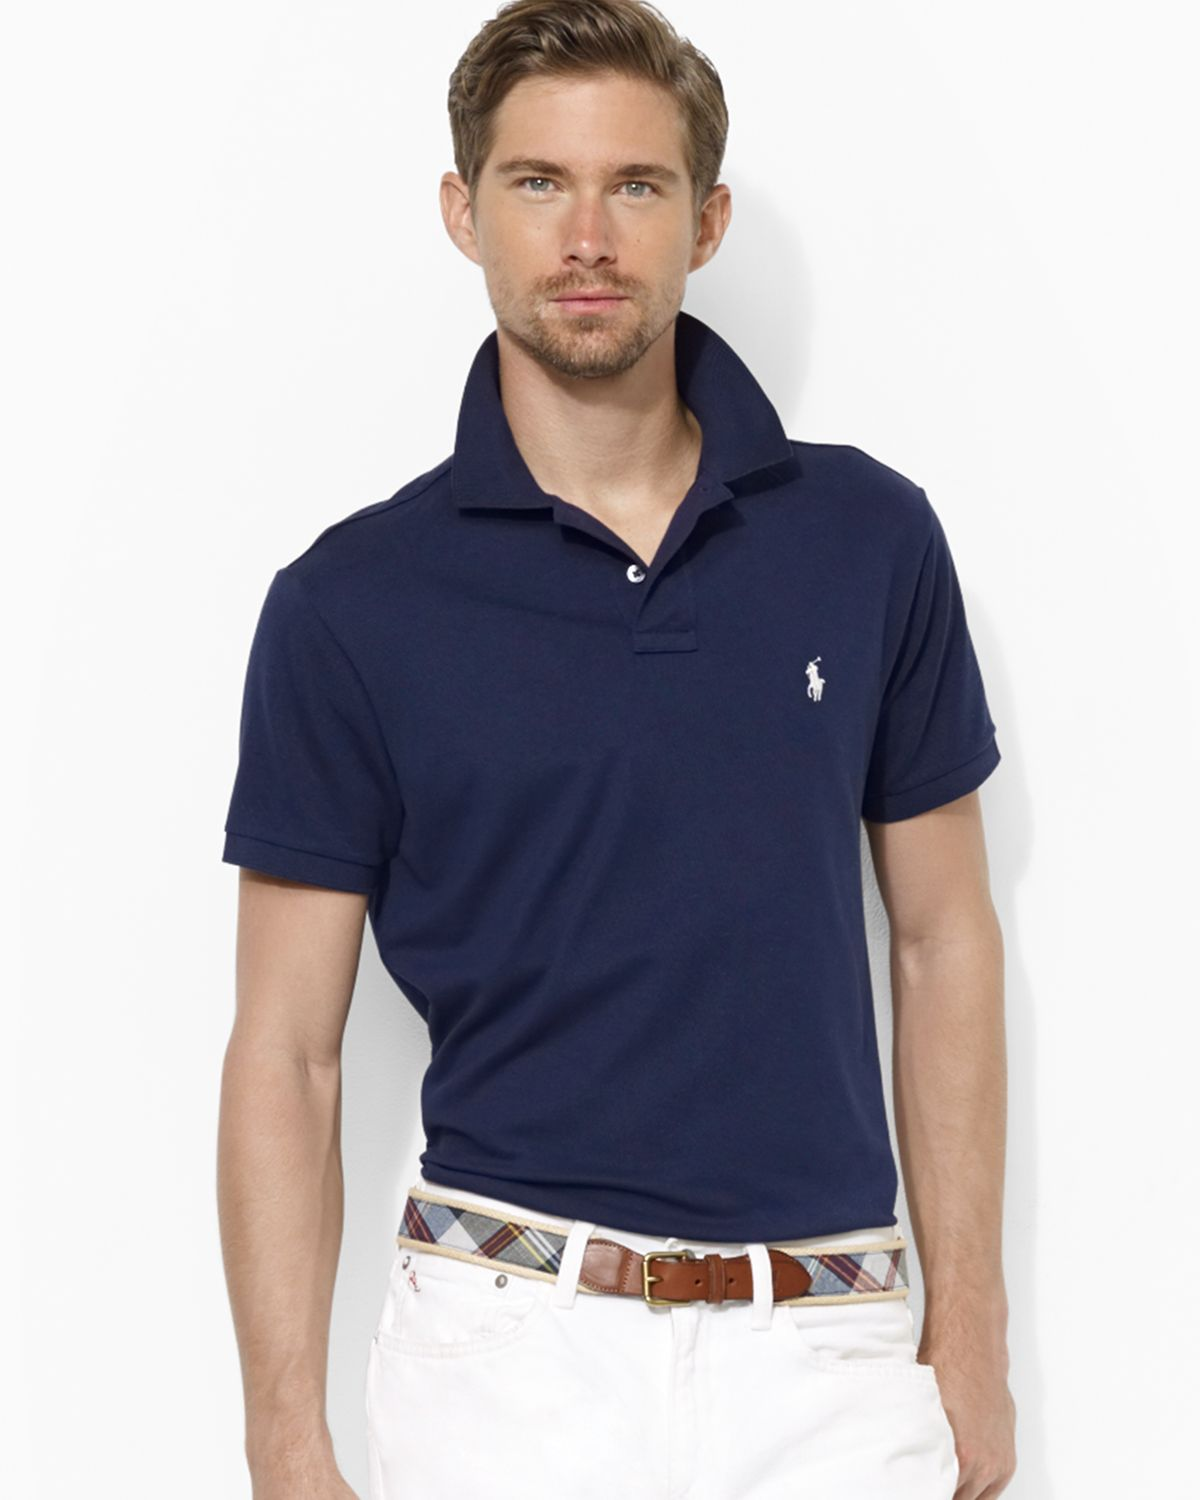 Shop clothing \u0026amp; home collections at RalphLauren.com. Gallery